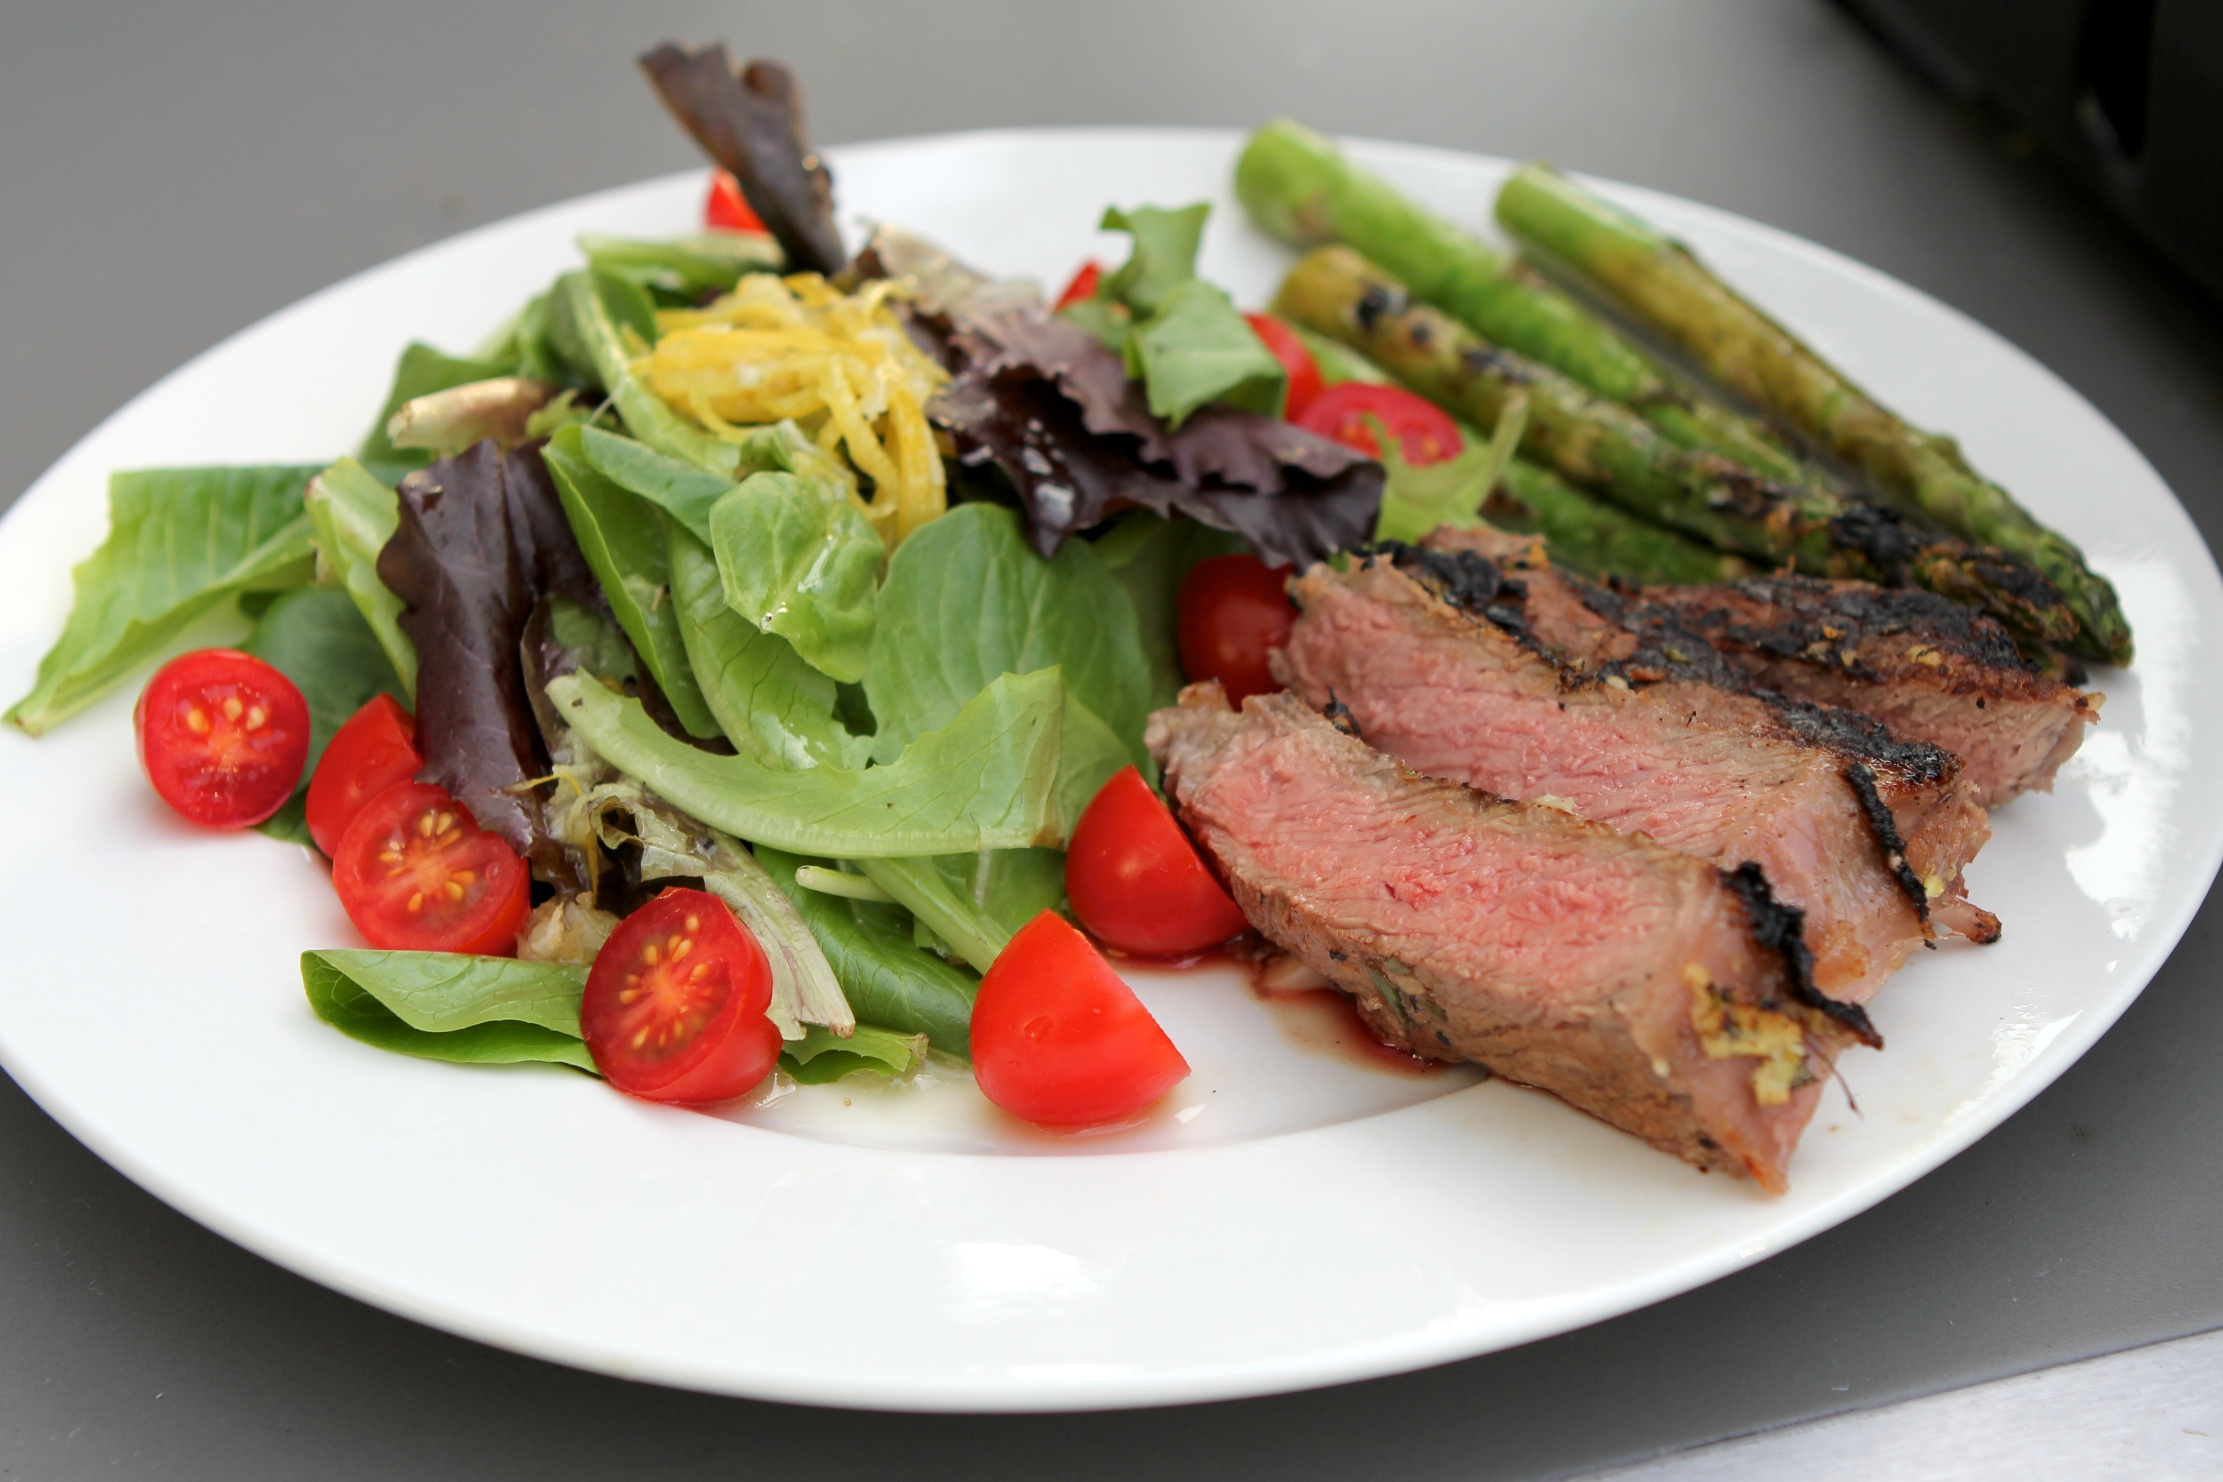 Steak Salad (photo: Raphael Marinho)